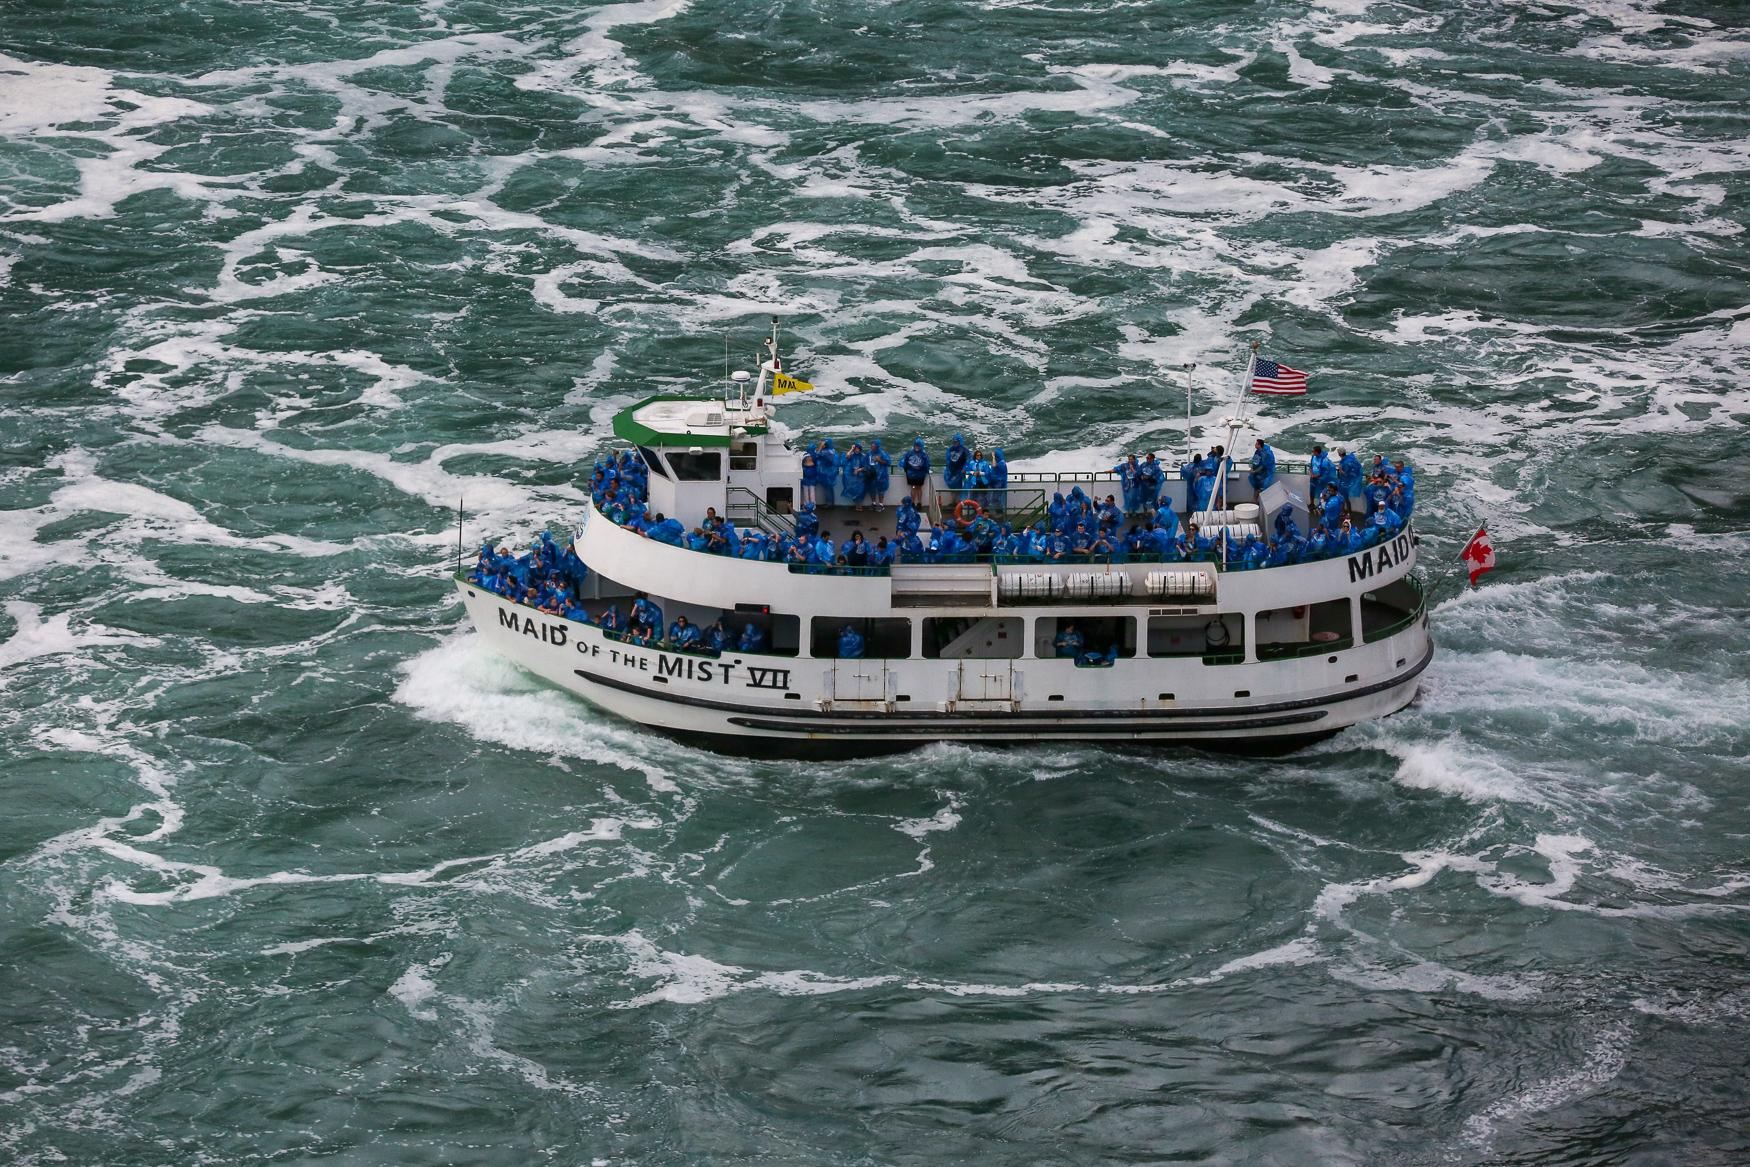 We know that boarding the Maid of the Mist and getting close to Niagara Falls is kind of what everyone does when they visit, but the views are truly unrivaled. The boat ride is quick, but just long enough to let you fulfill your fantasies from that episode of{&amp;nbsp;}<em>The Office{&amp;nbsp;}</em>where Jim and Pam eloped.{&amp;nbsp;}(Amanda Andrade-Rhoades/DC Refined){&amp;nbsp;}